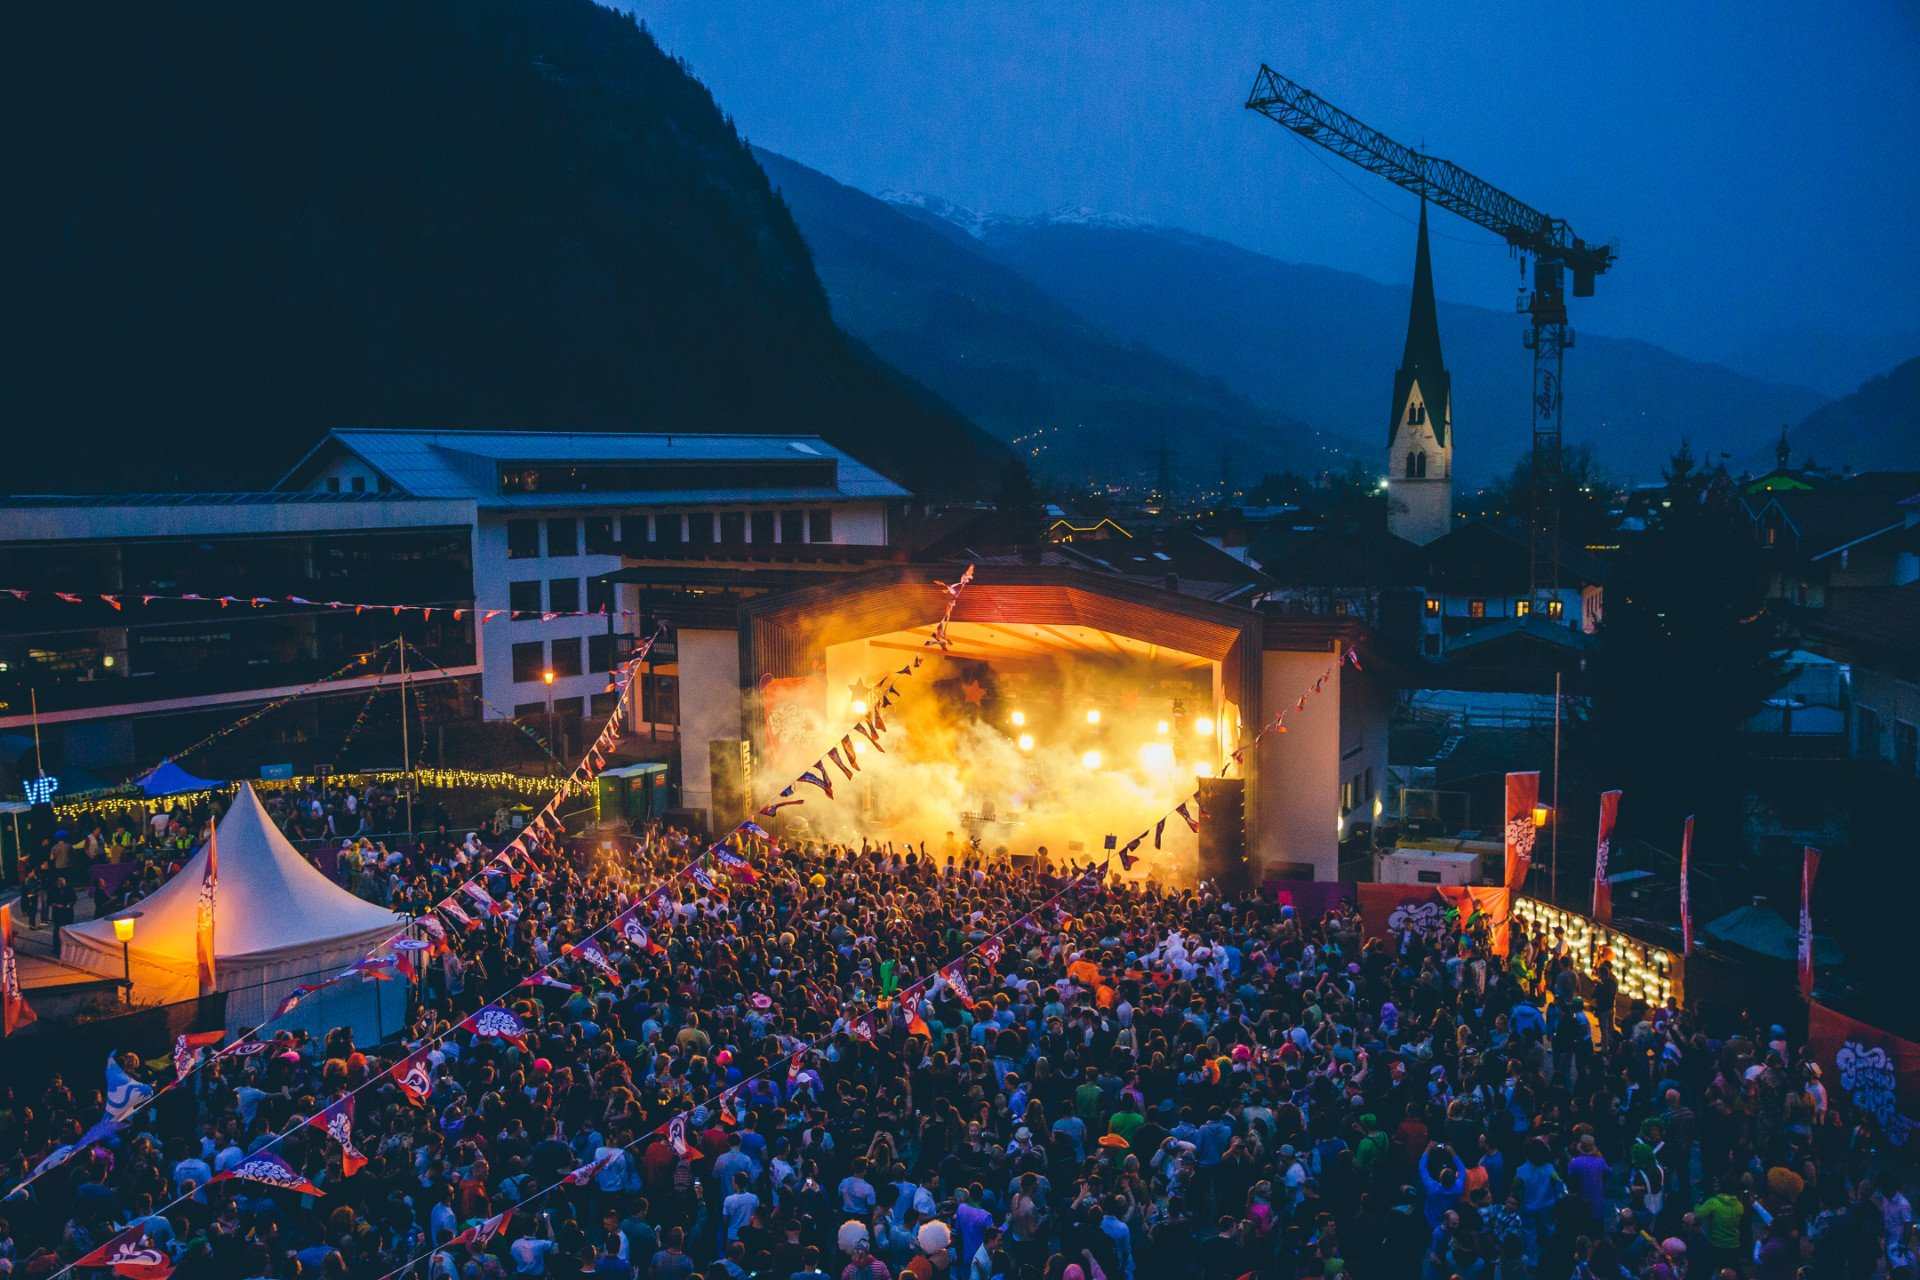 Snowbombing Music Festival in Mayrhofen in Austria 2020 - Best Time